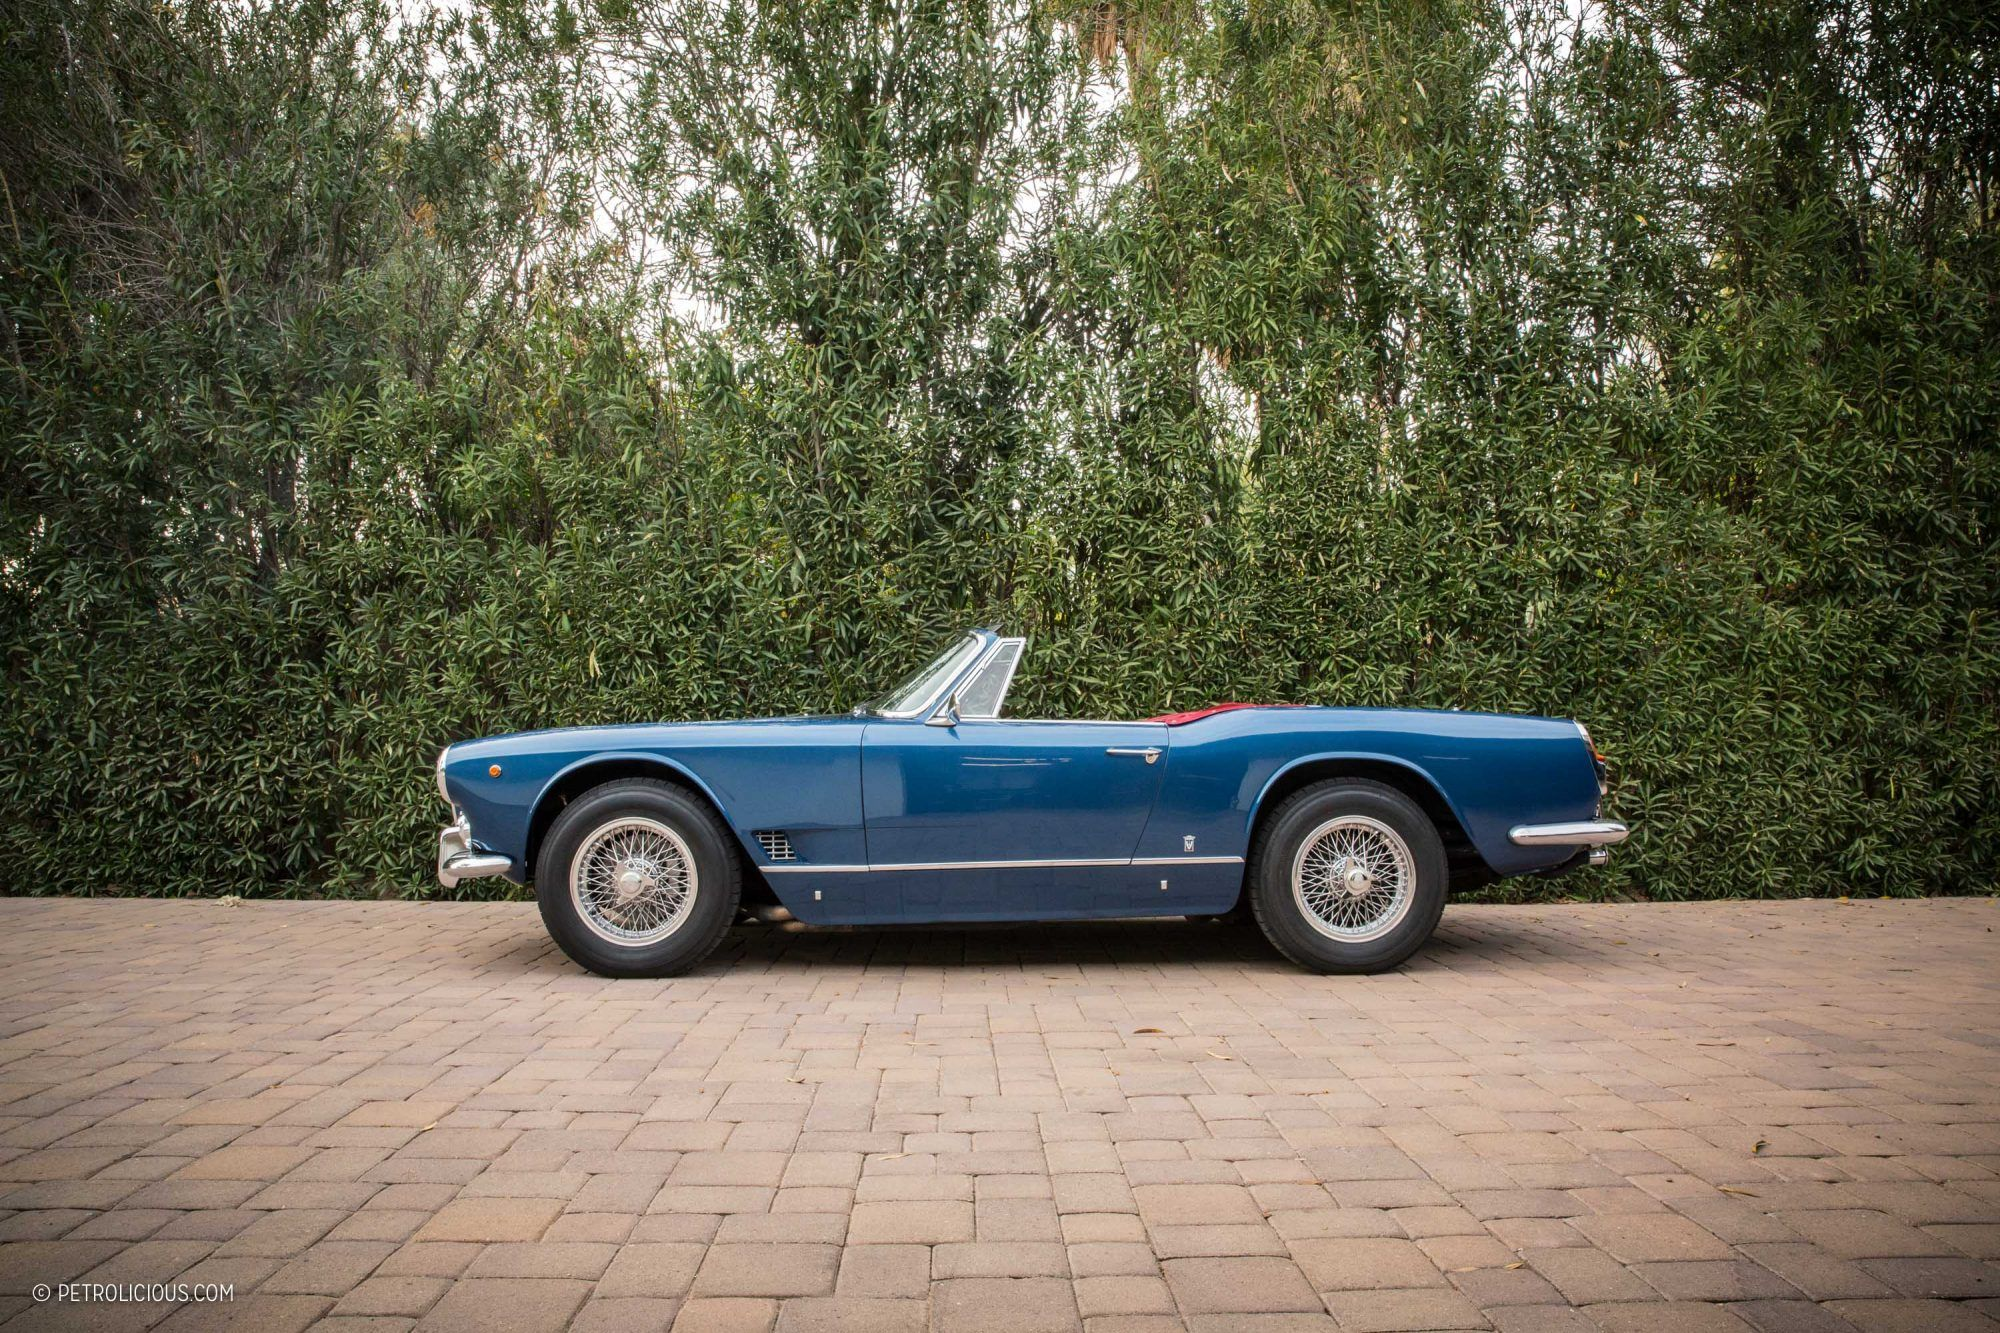 GALLERY: This 1960 Maserati 3500 GT Spyder Vignale Is A ...